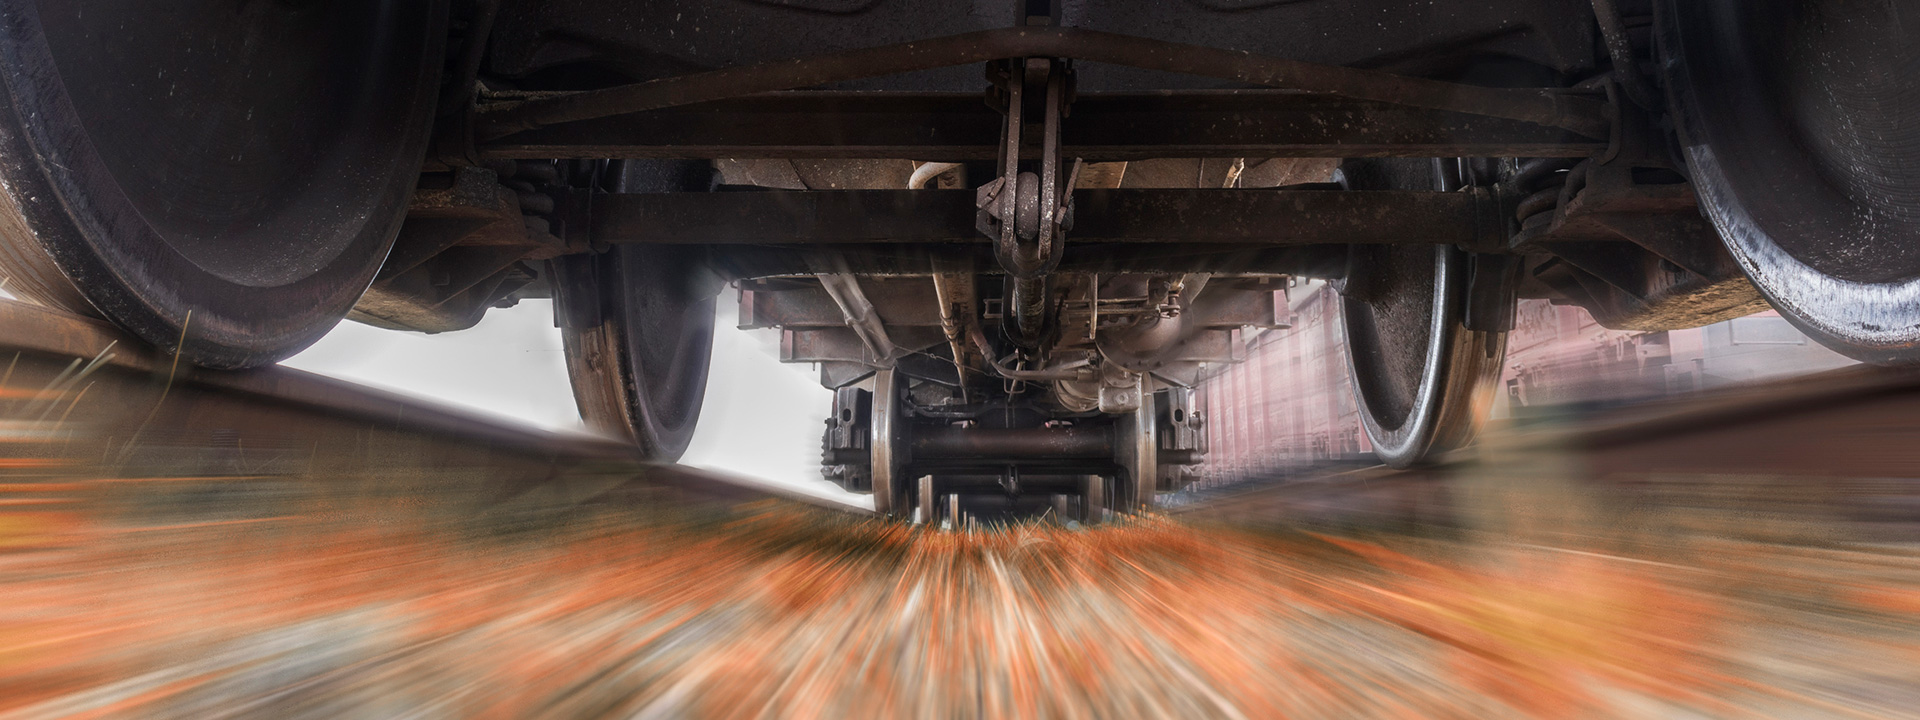 Vehicle-Track consultancy